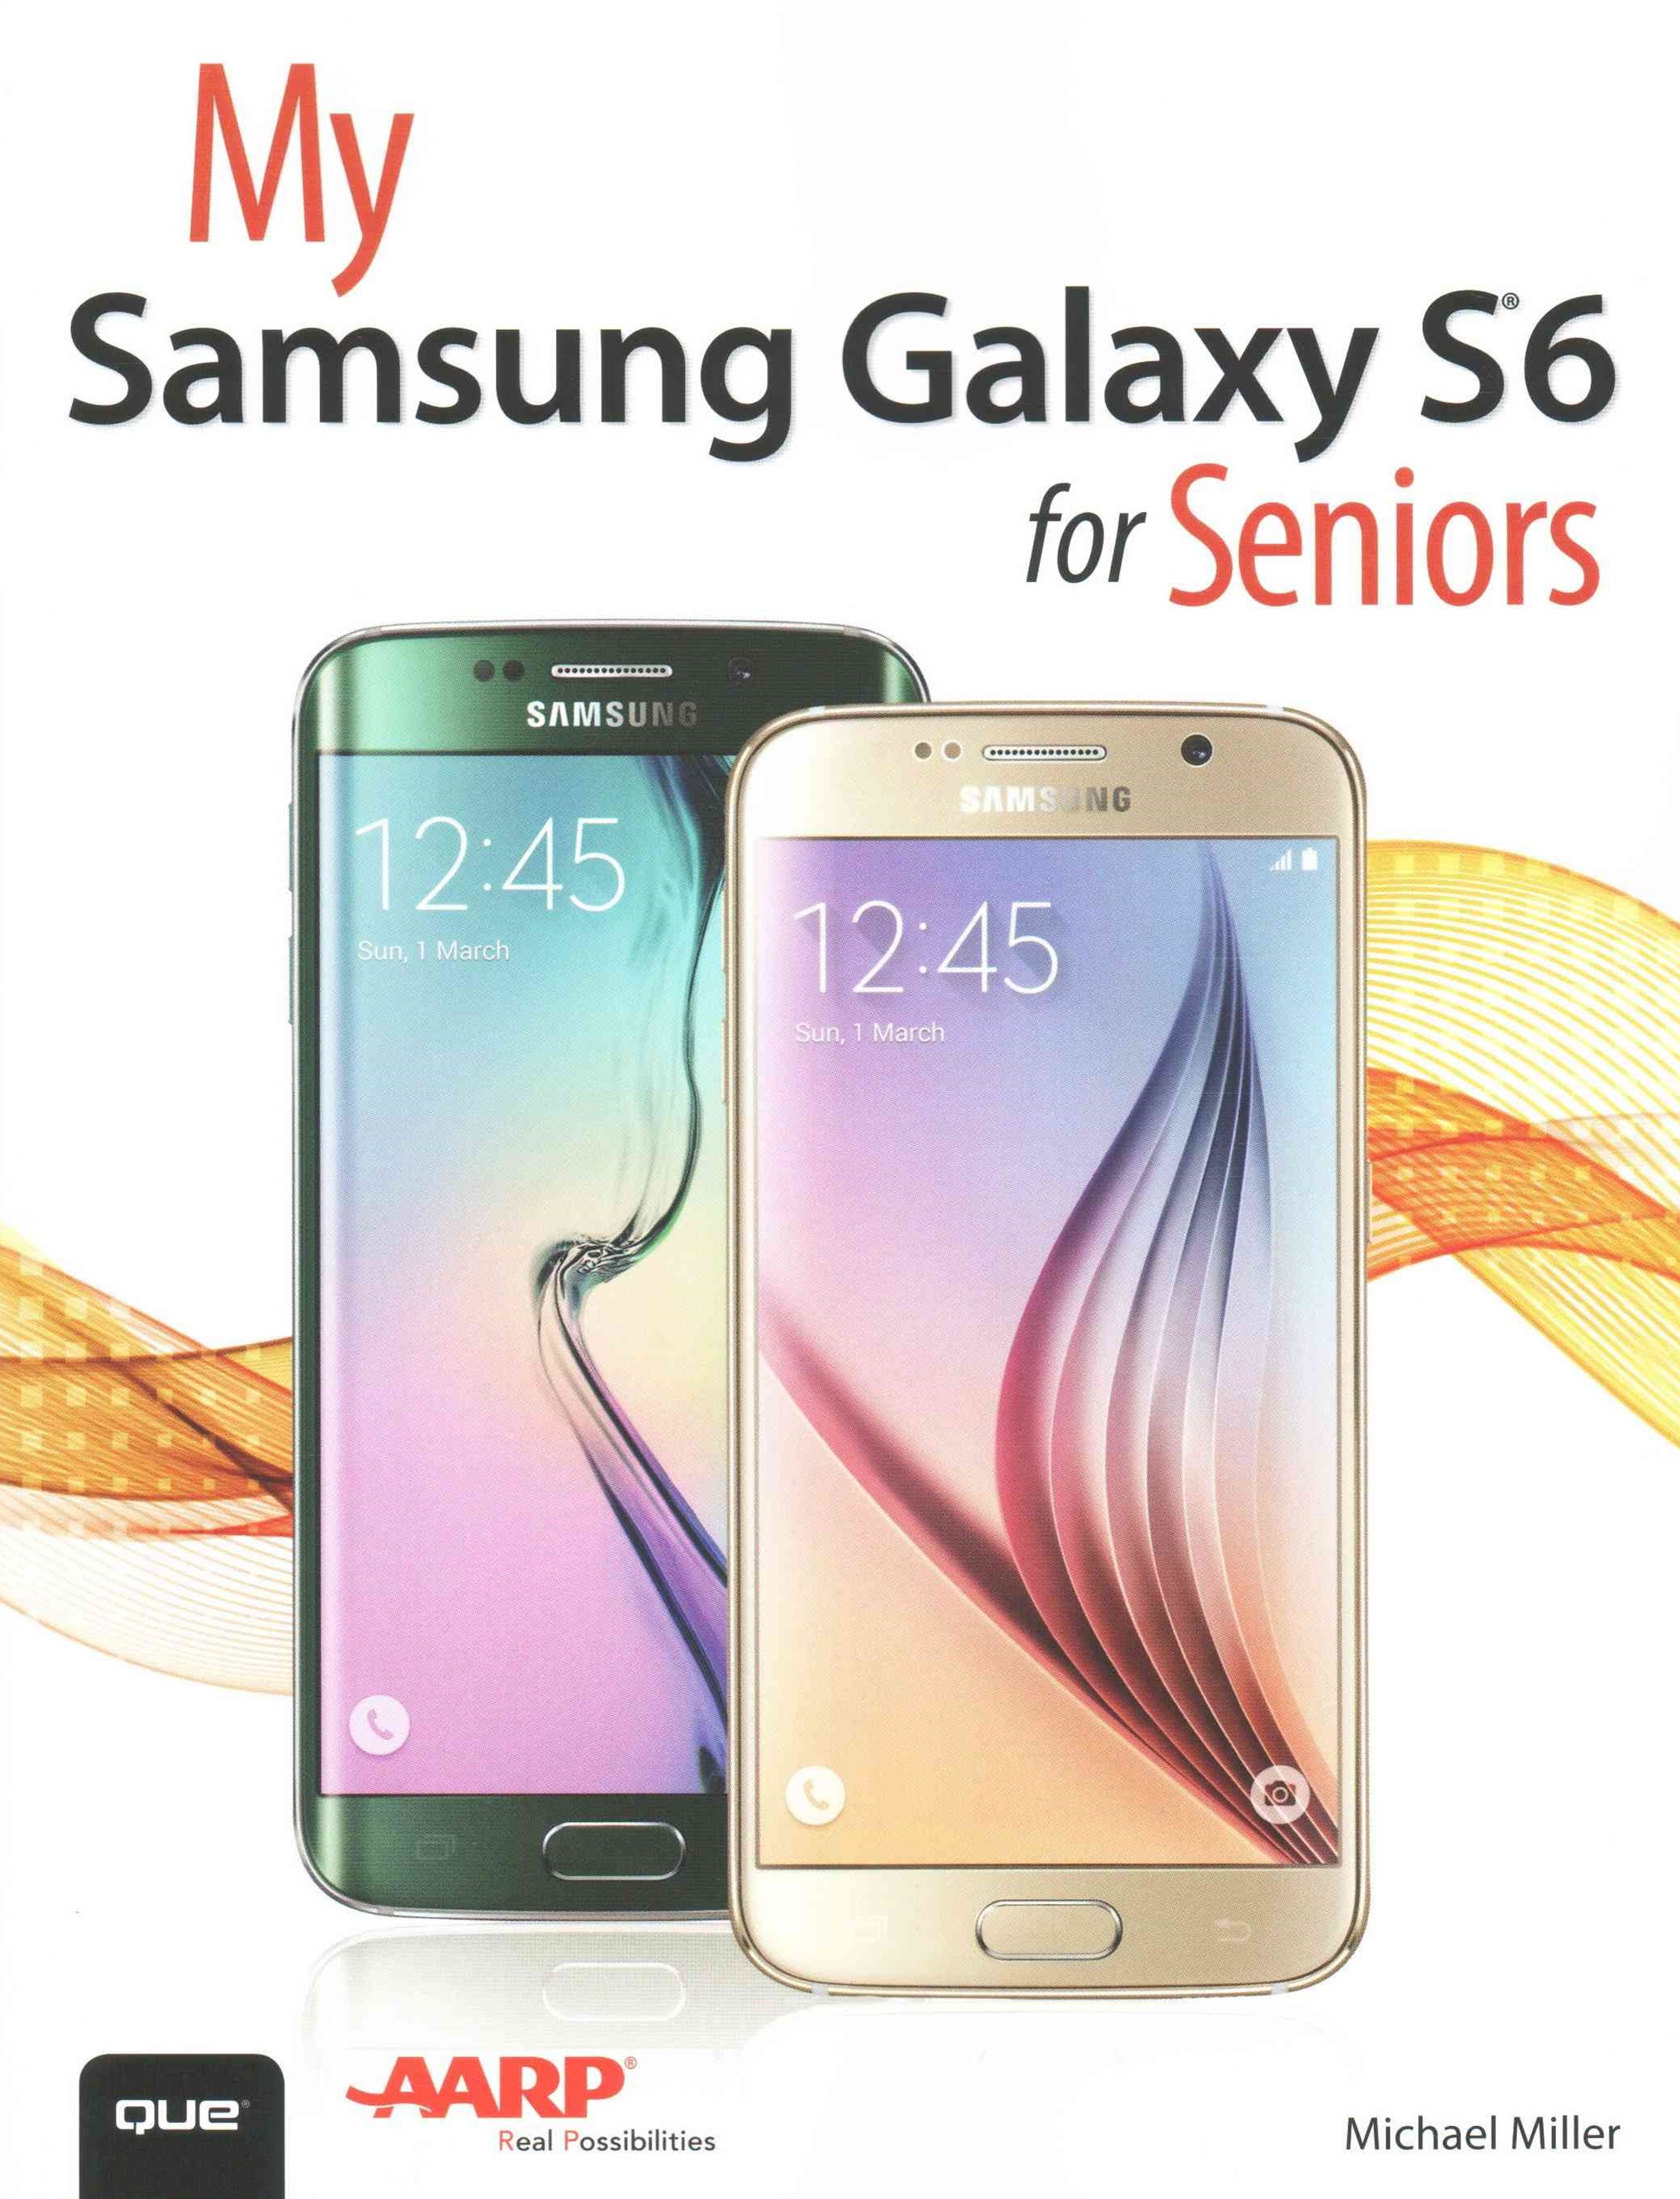 My Samsung Galaxy S6 for Seniors